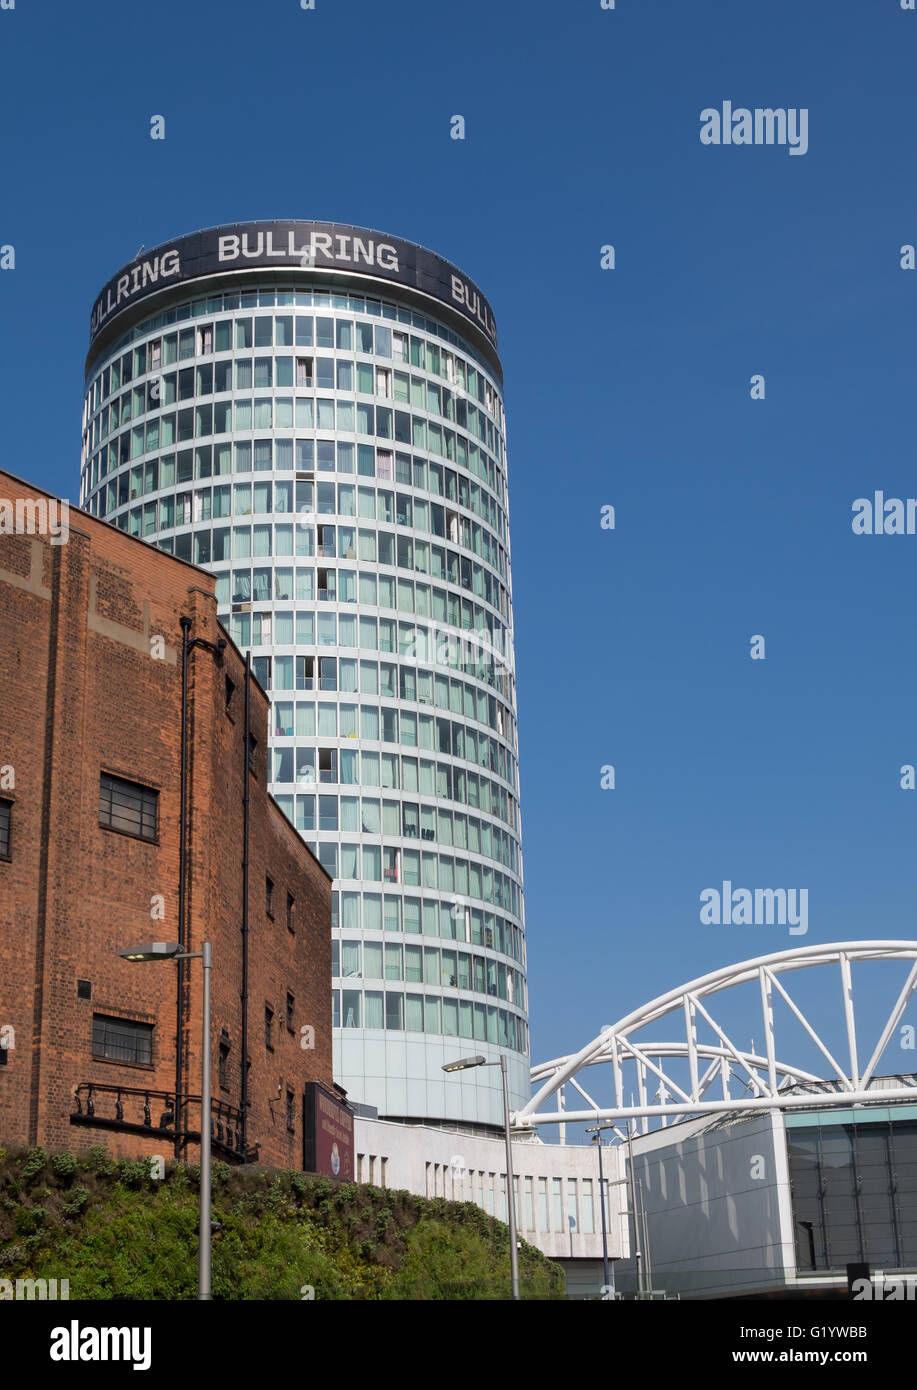 The Rotunda in the Bullring Shopping Centre in the middle of Birmingham, UK - Stock Image